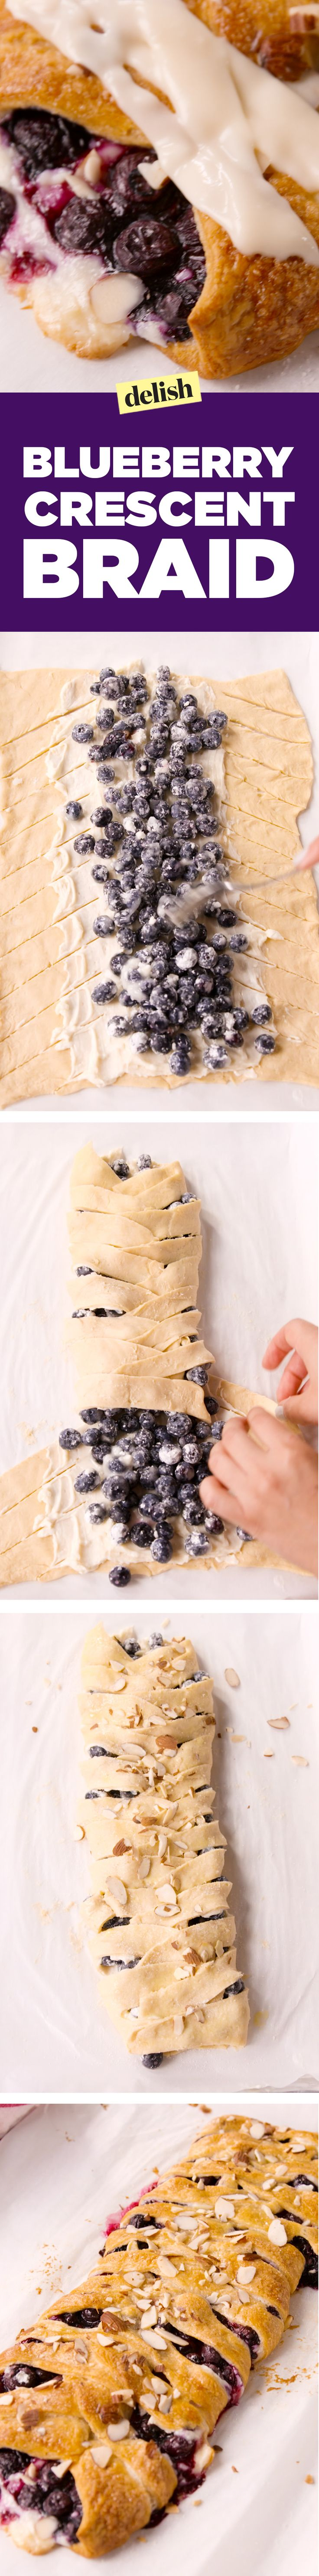 This blueberry crescent braid will impress everyone at your brunch. Get the recipe on Delish.com.